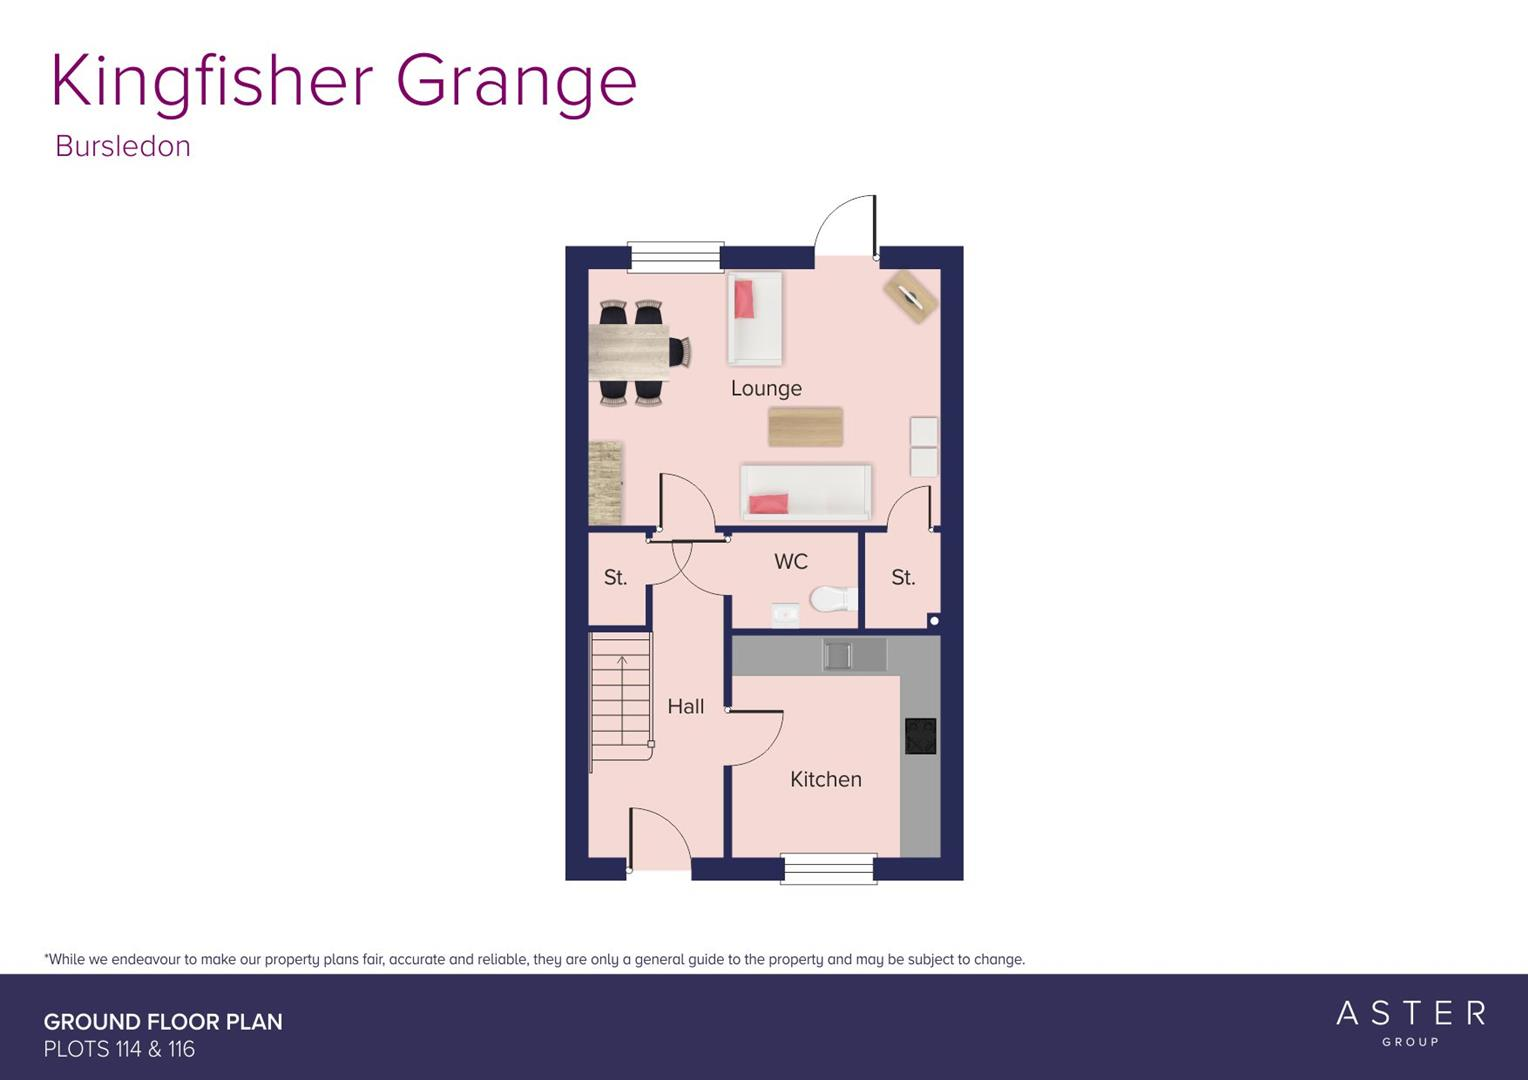 Kingfisher Grange Bursledon - Website Image.jpg